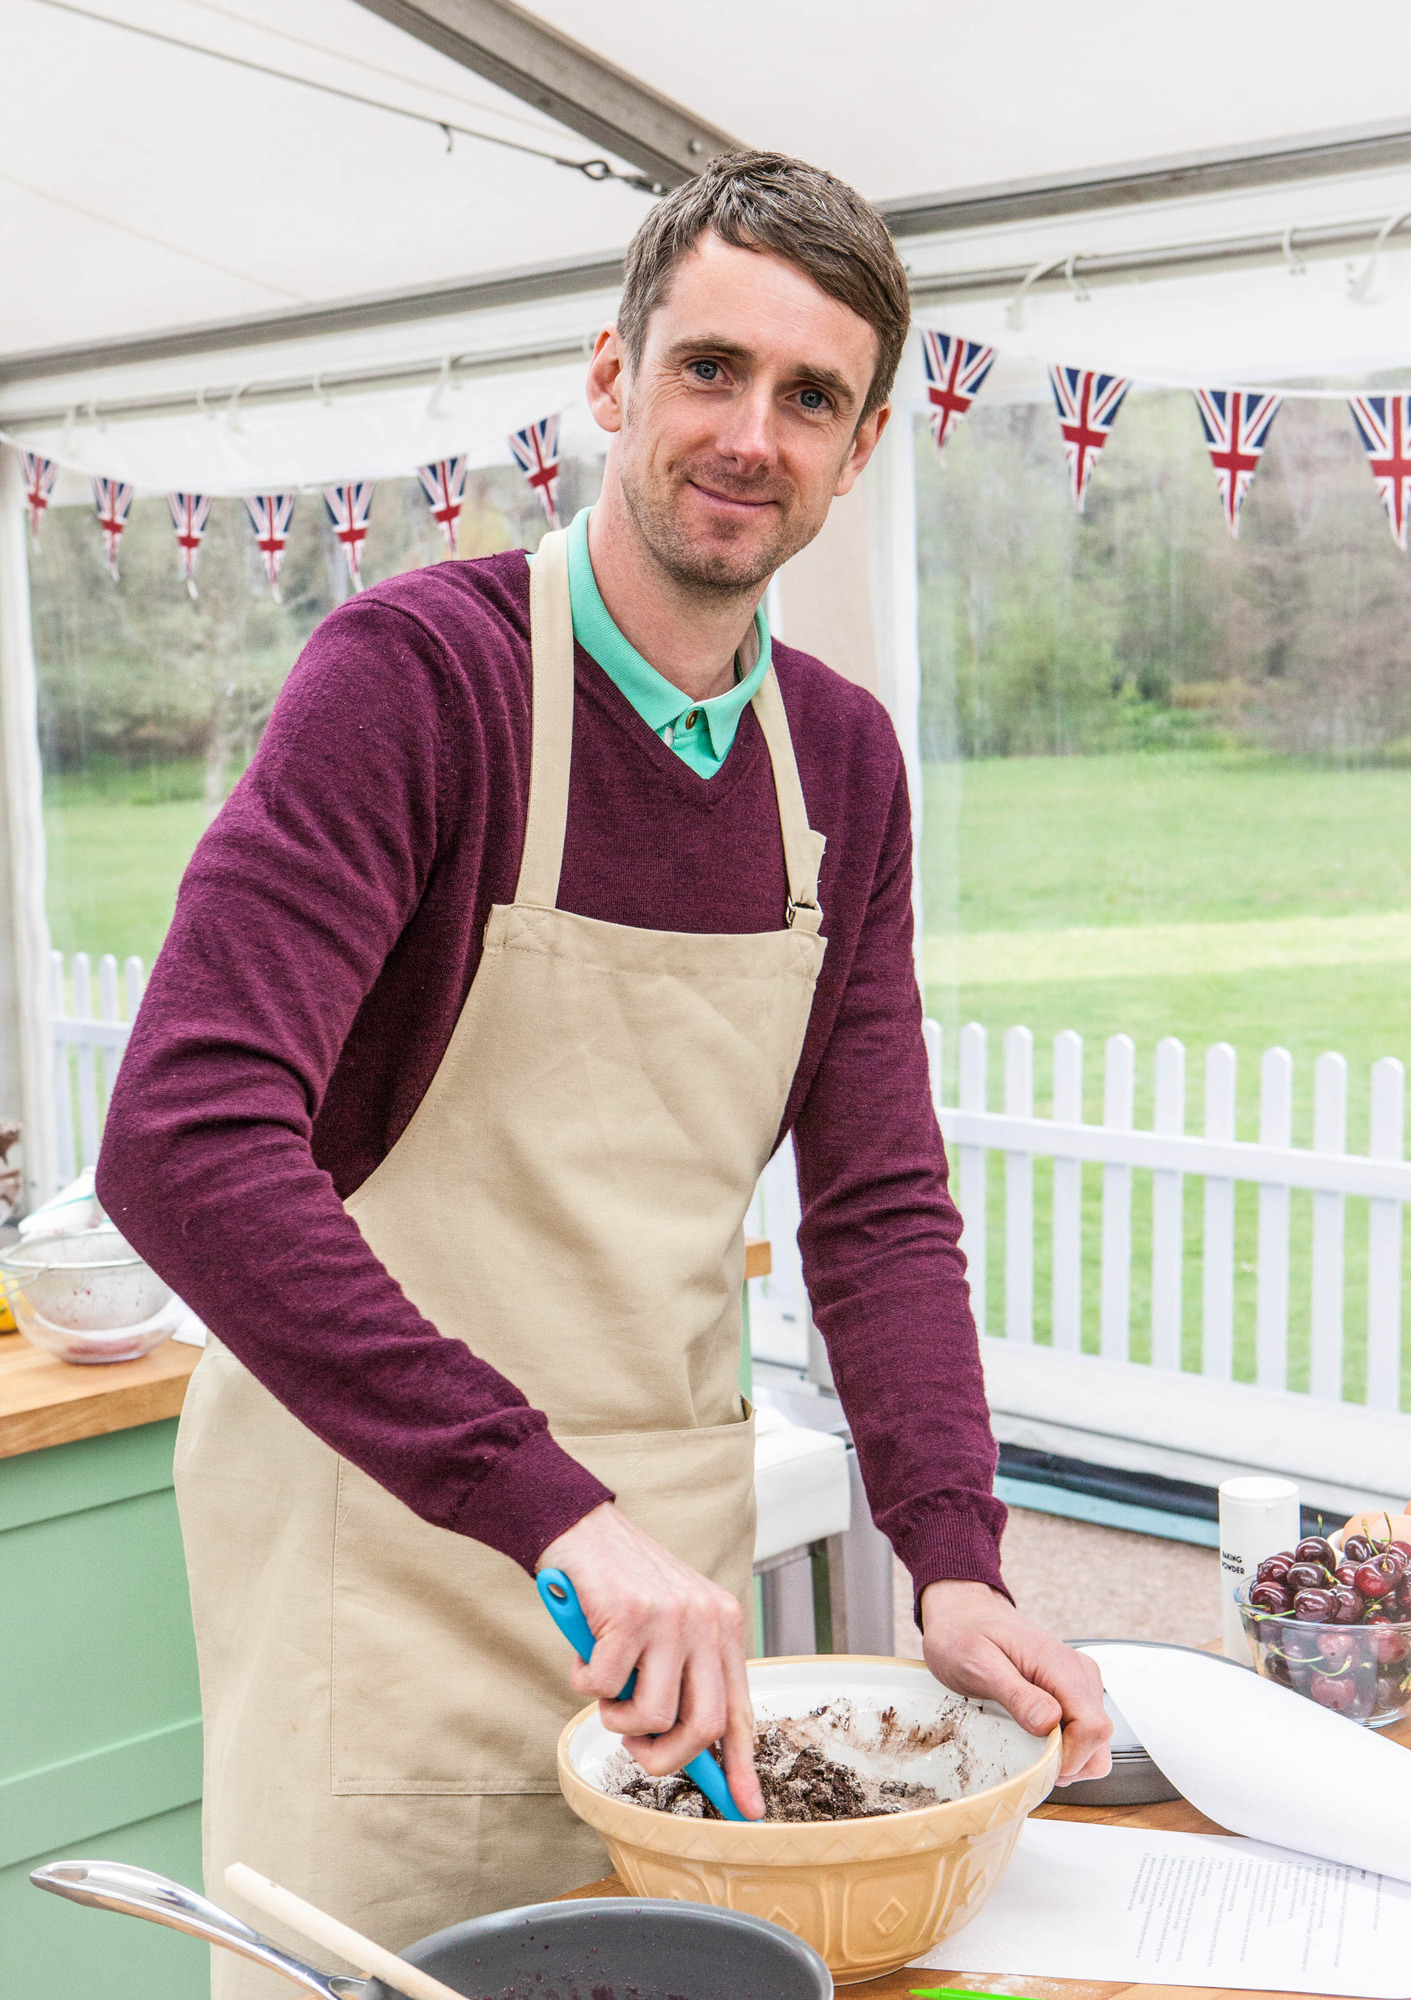 Mat from The Great British Bake Off